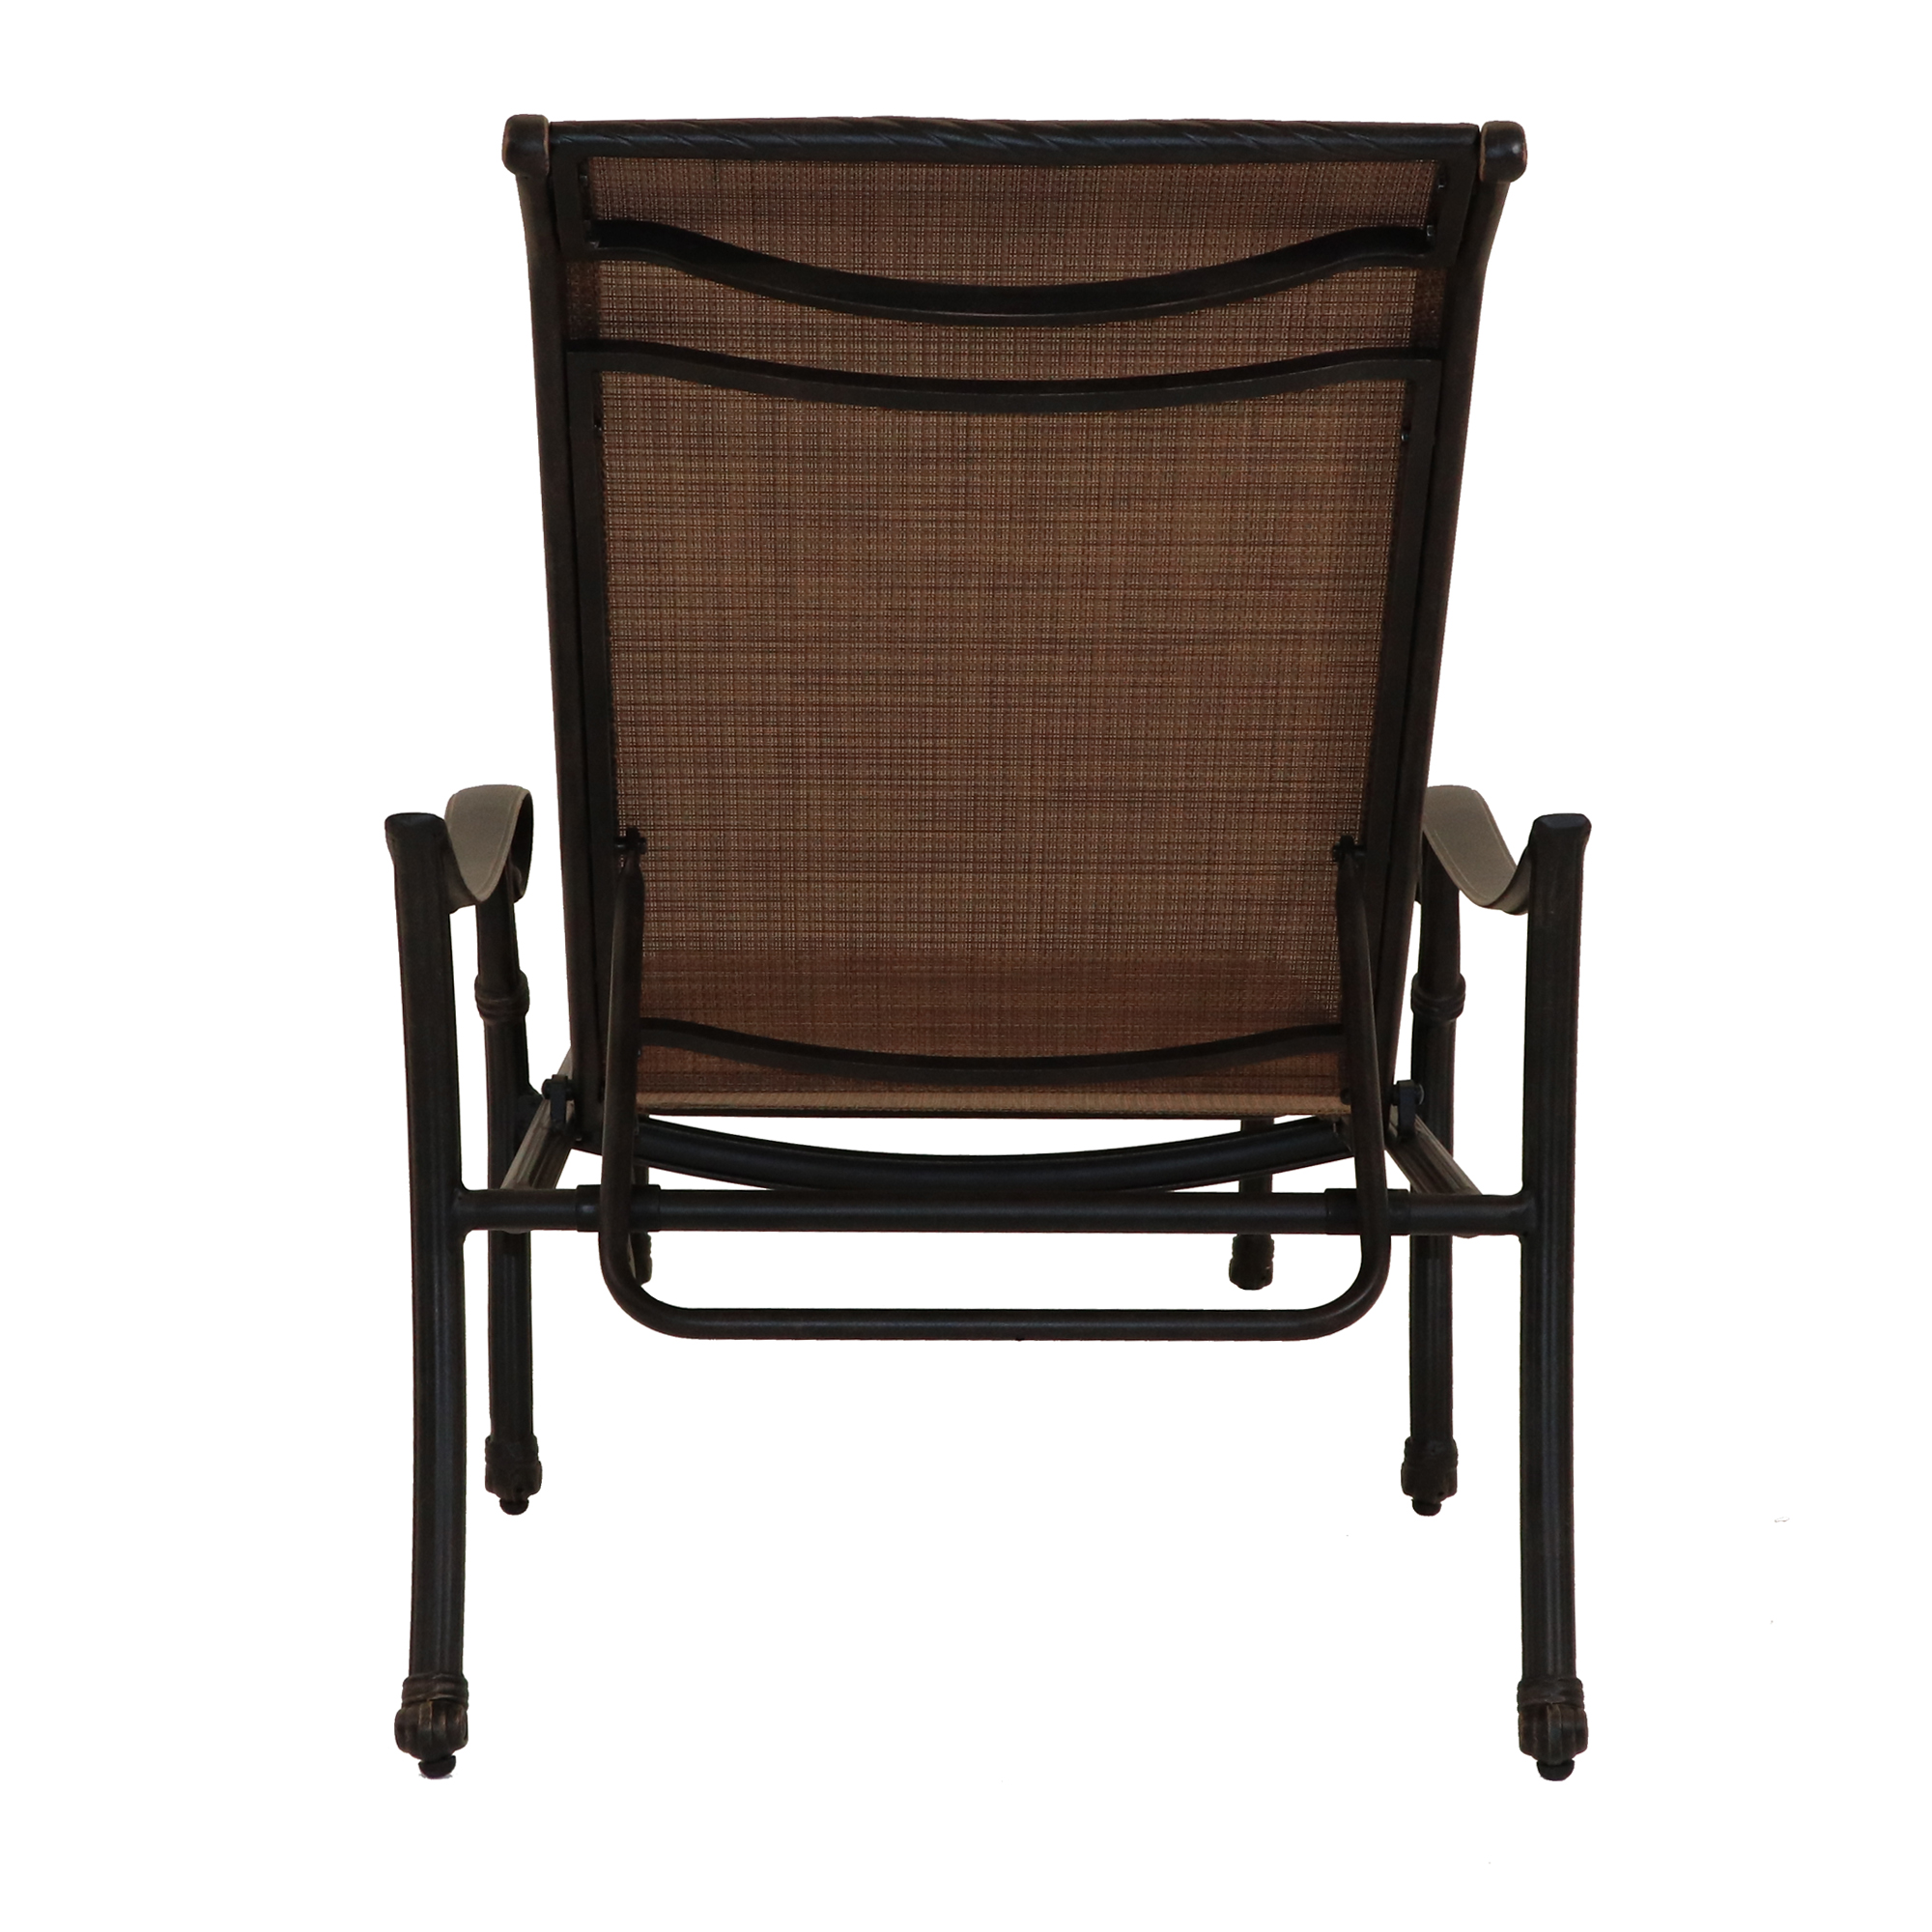 with top suppliers aluminum of wheels chaise lounges well lounge aluminium liked sun cast inside furniture lounger